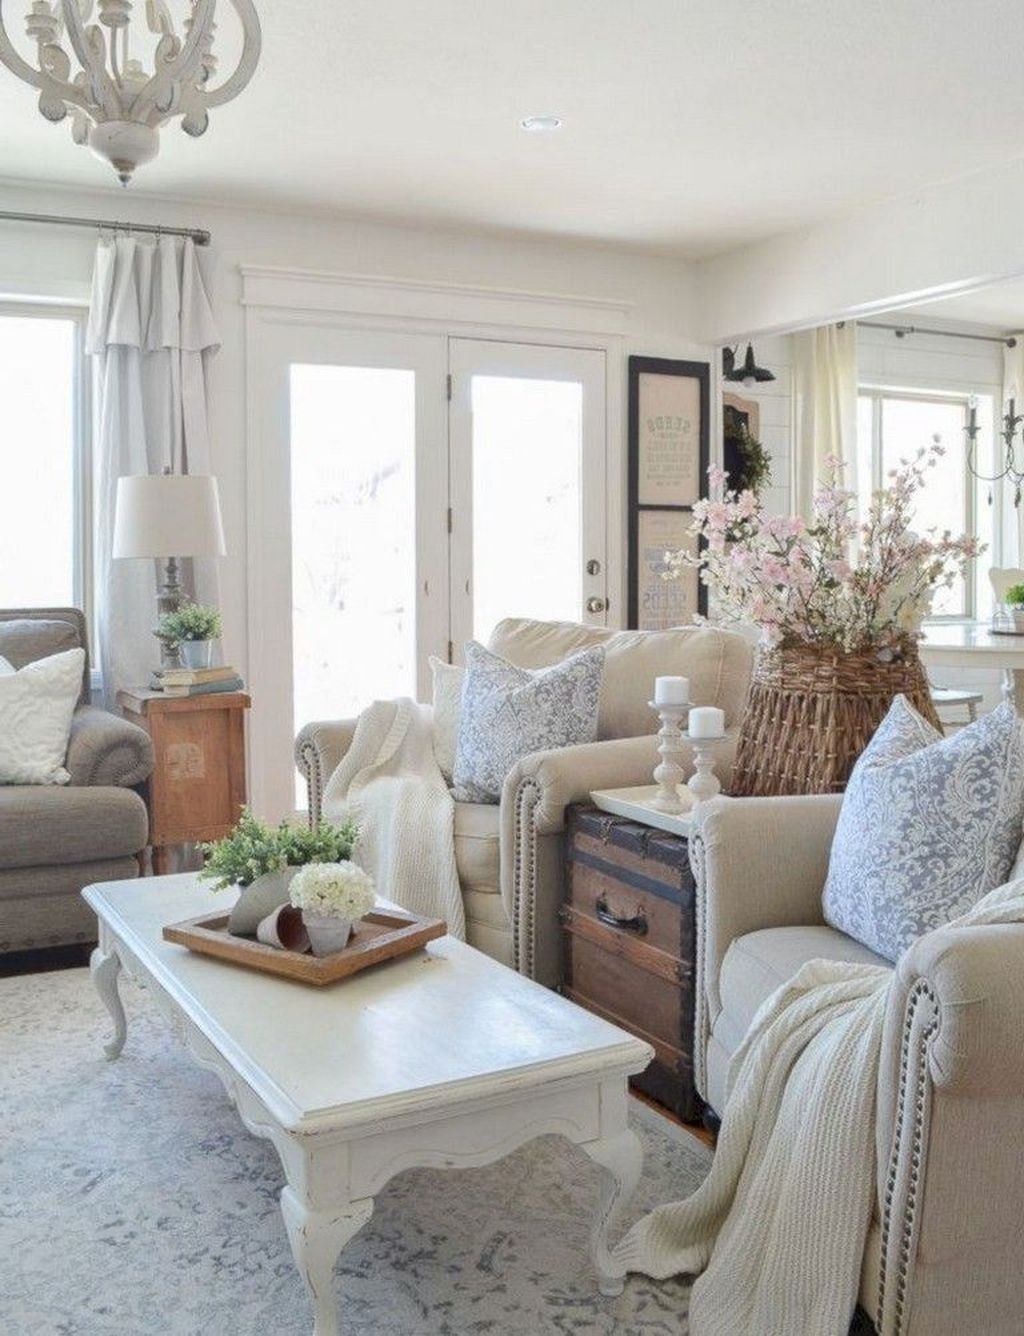 20 comfy farmhouse living room decor ideas with images on modern farmhouse living room design and decor inspirations country farmhouse furniture id=66227